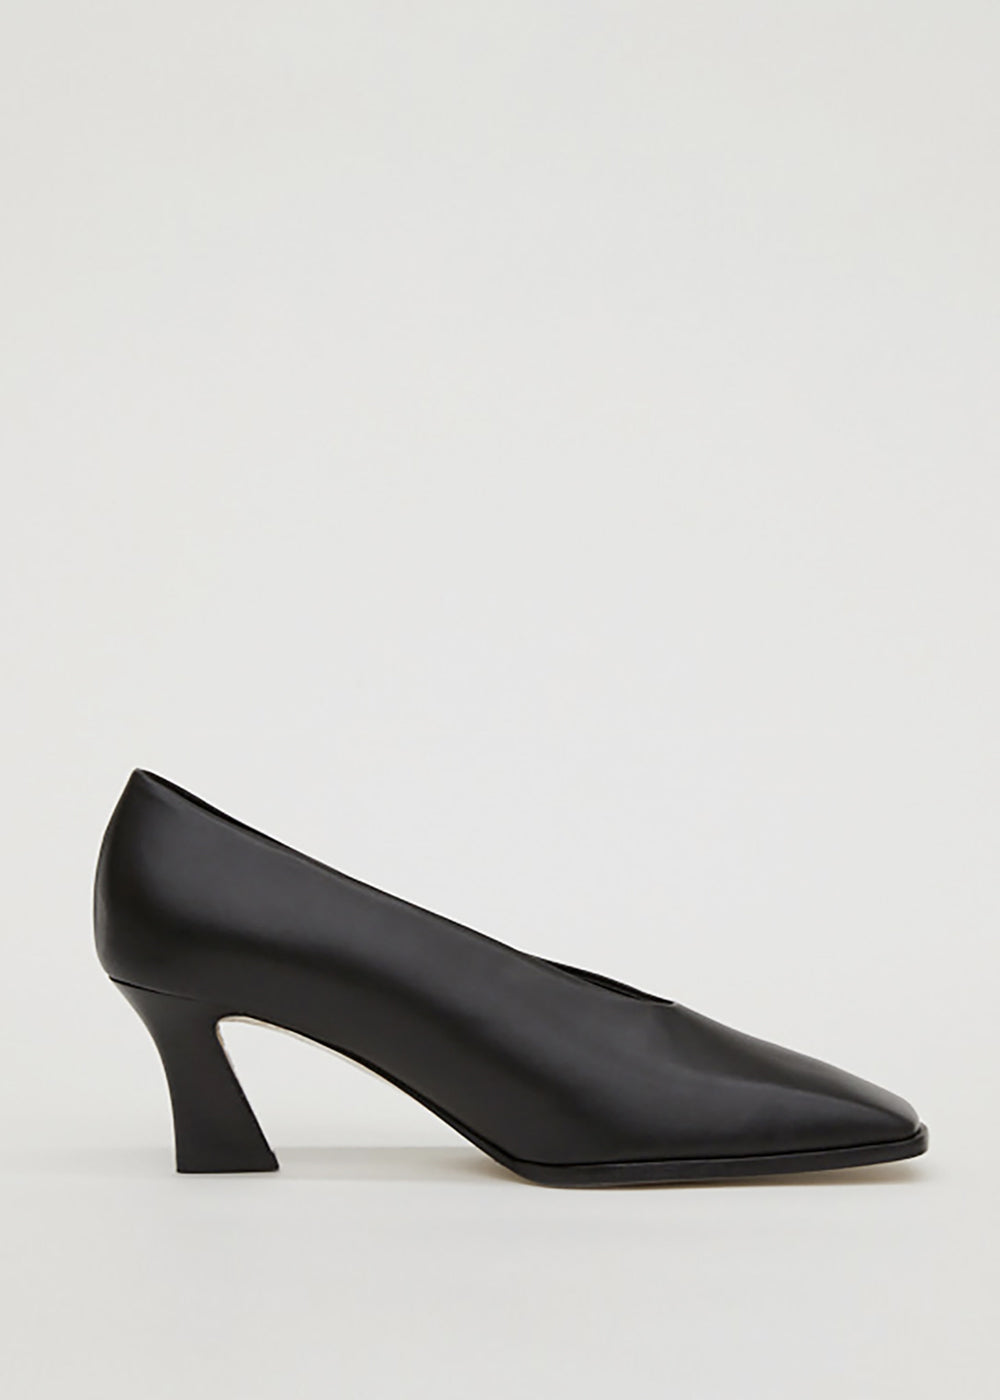 SQUARE LEATHER PUMPS BLACK